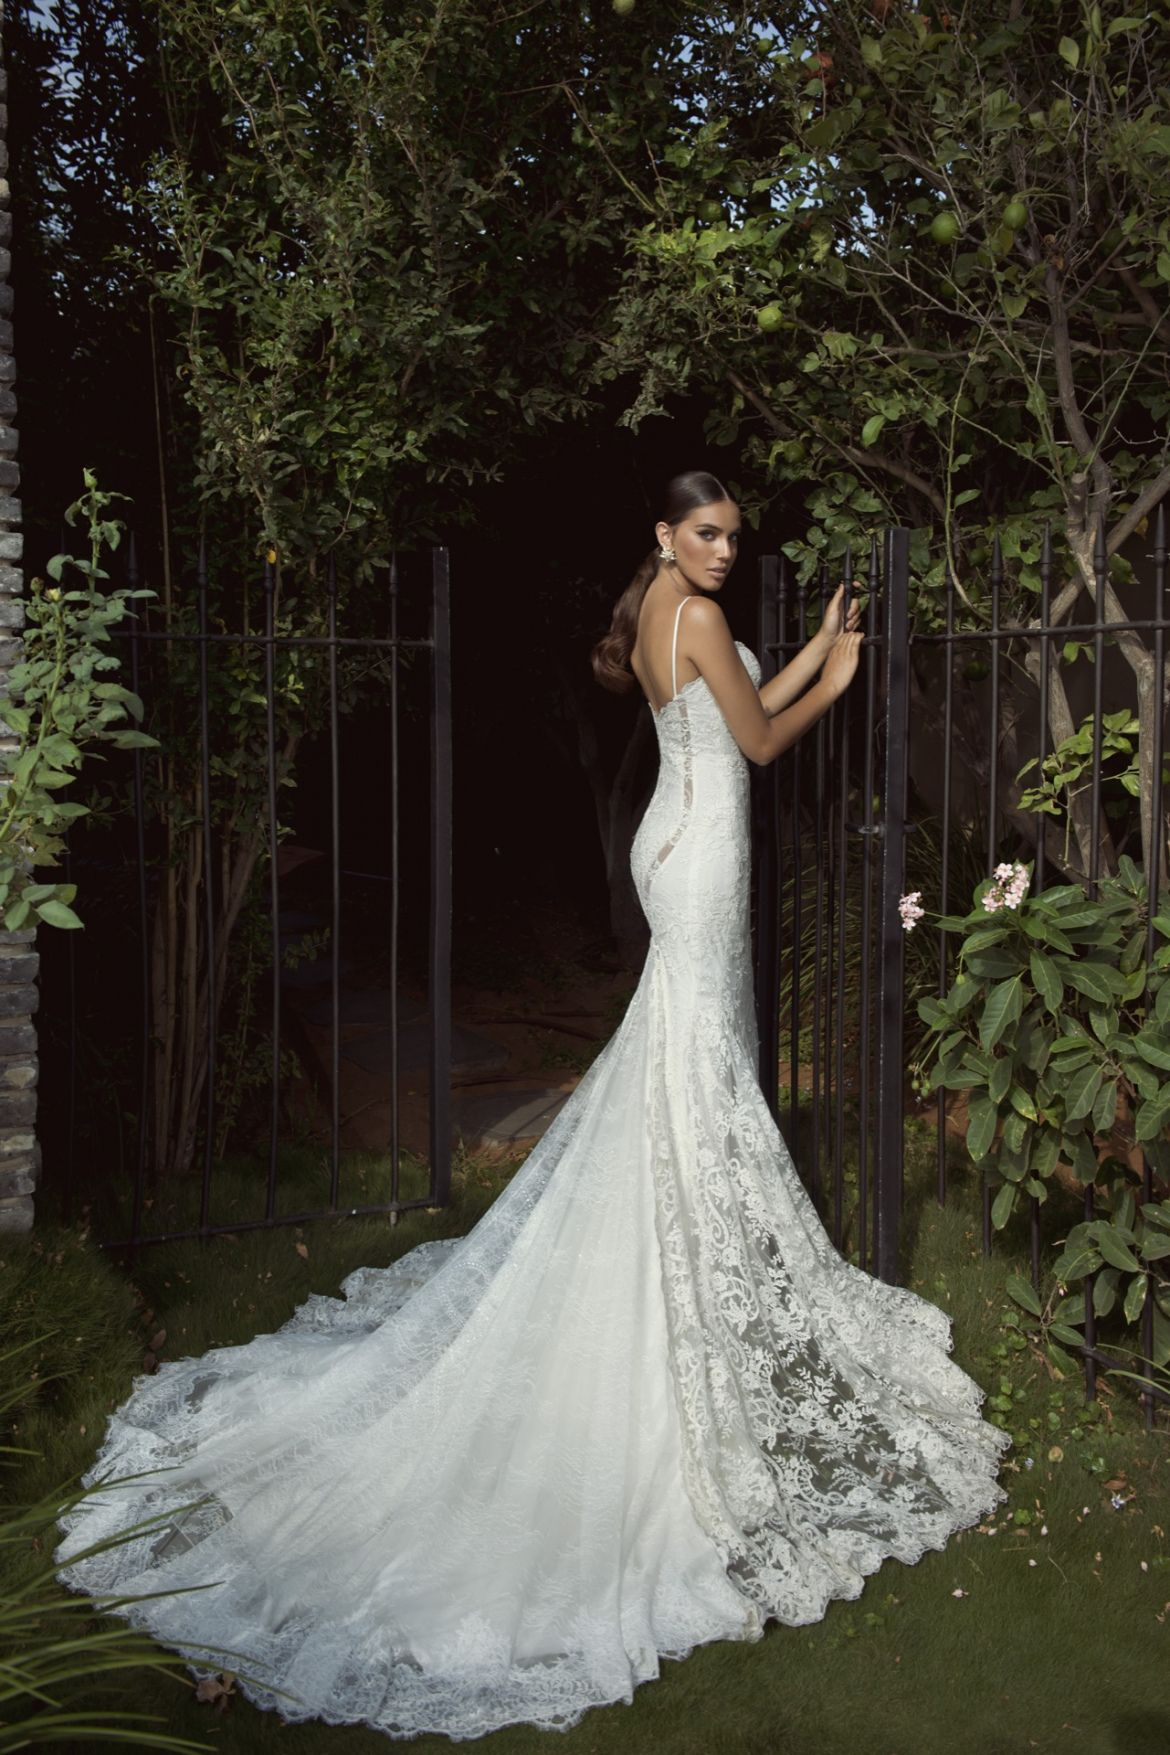 50+ Galia Lahav Wedding Dresses Prices - Dresses for Wedding ...